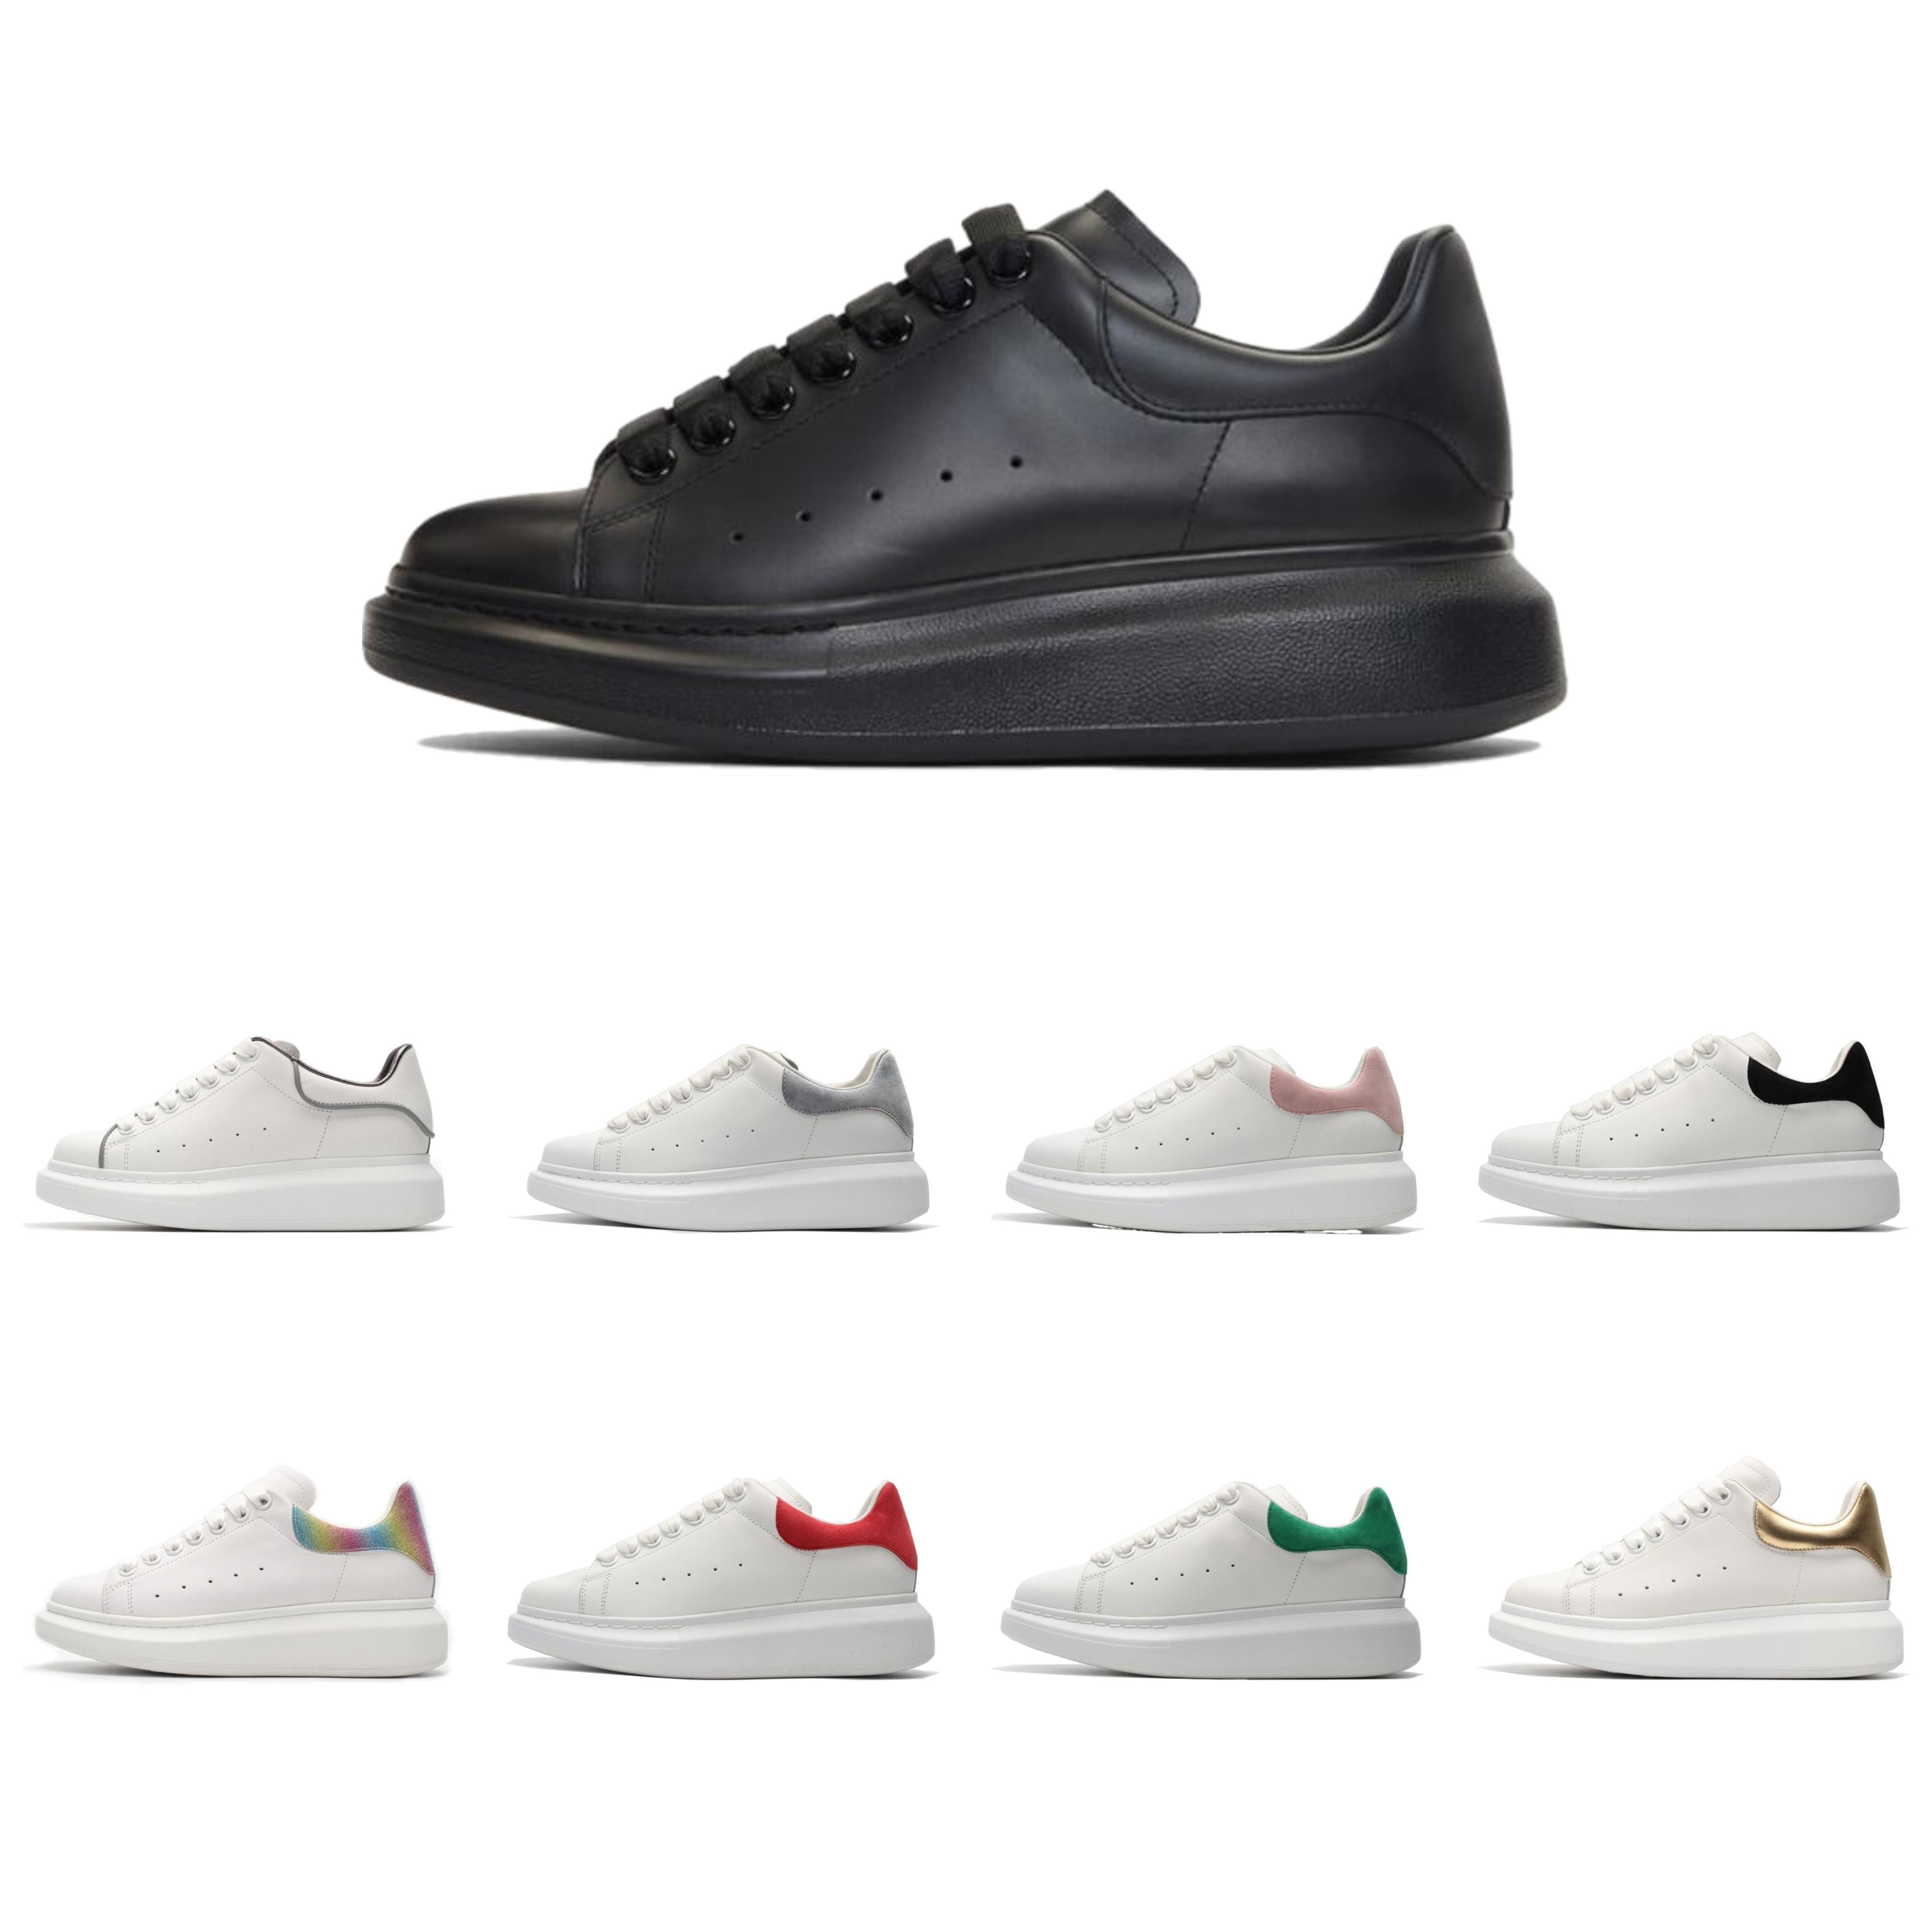 Velvet Womens Chaussures Preto Mens sapatos bonito Platform Casual Sneakers Designer de Luxo Sapatos de couro Cores sólidas Dress Shoes